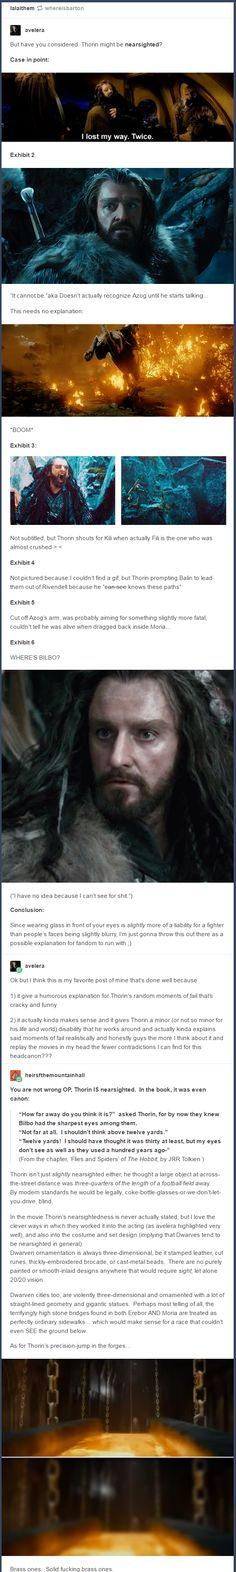 Thorin is nearsighted I'm so happy... I, too, am almost blind without my glasses. You legend, Thorin. I panic just thinking about leaving the house without my glasses. it will never happen.